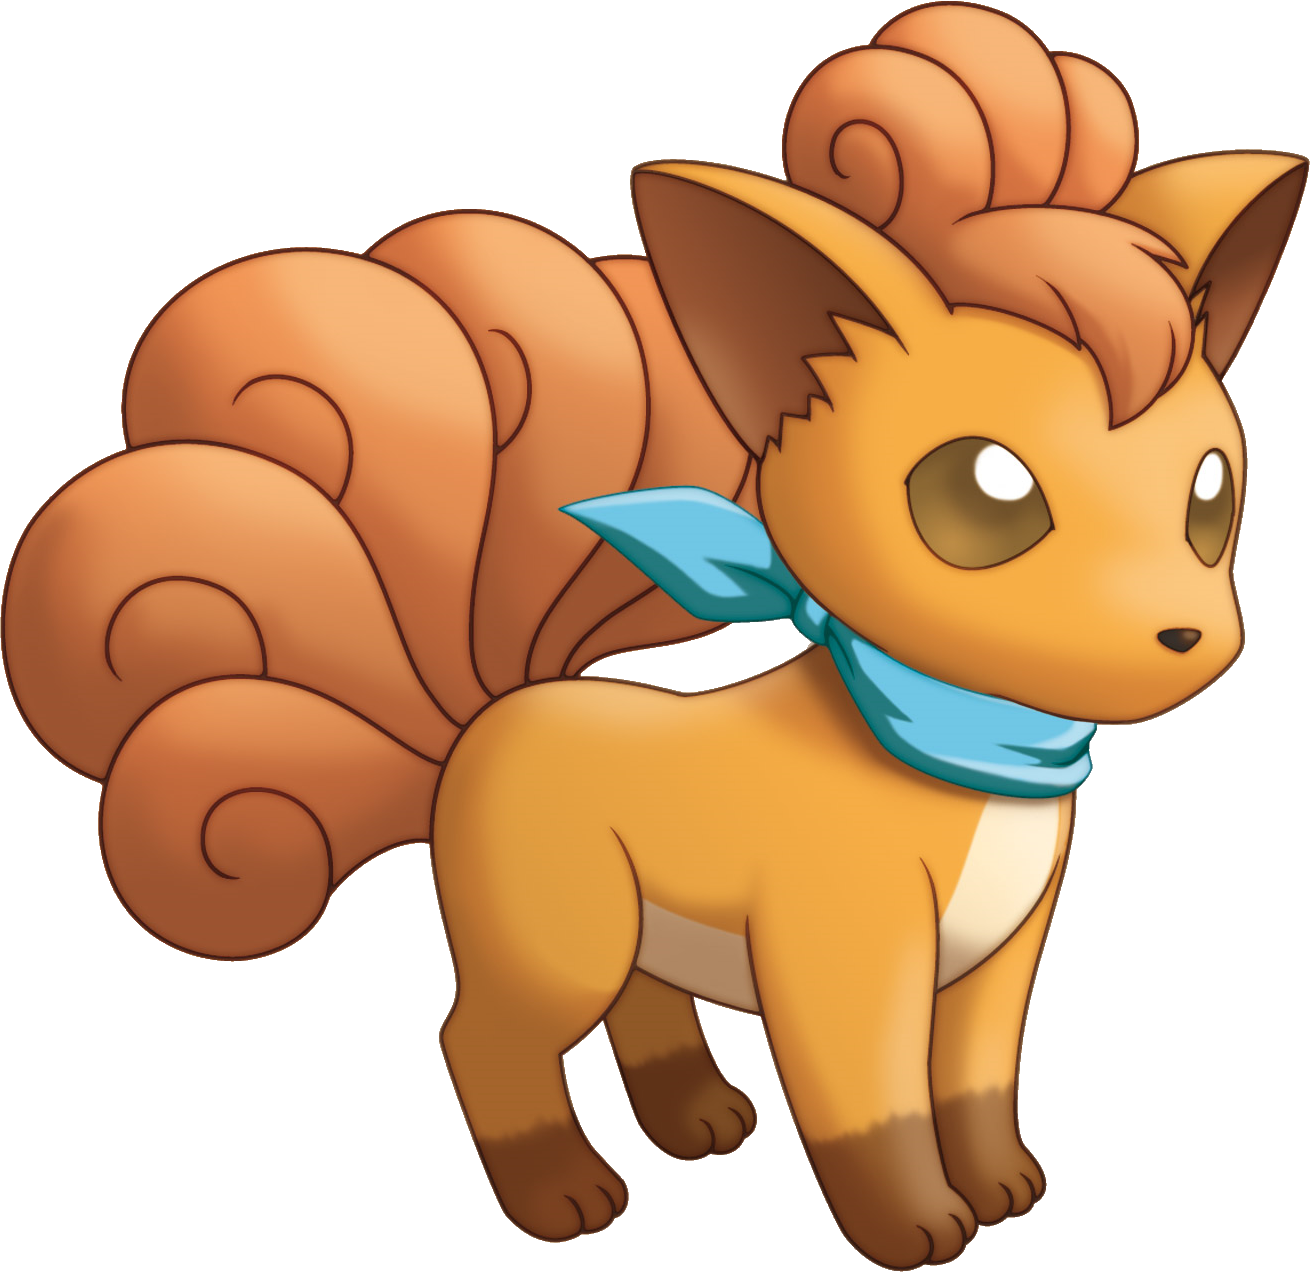 Vulpix gay Pokemon 37